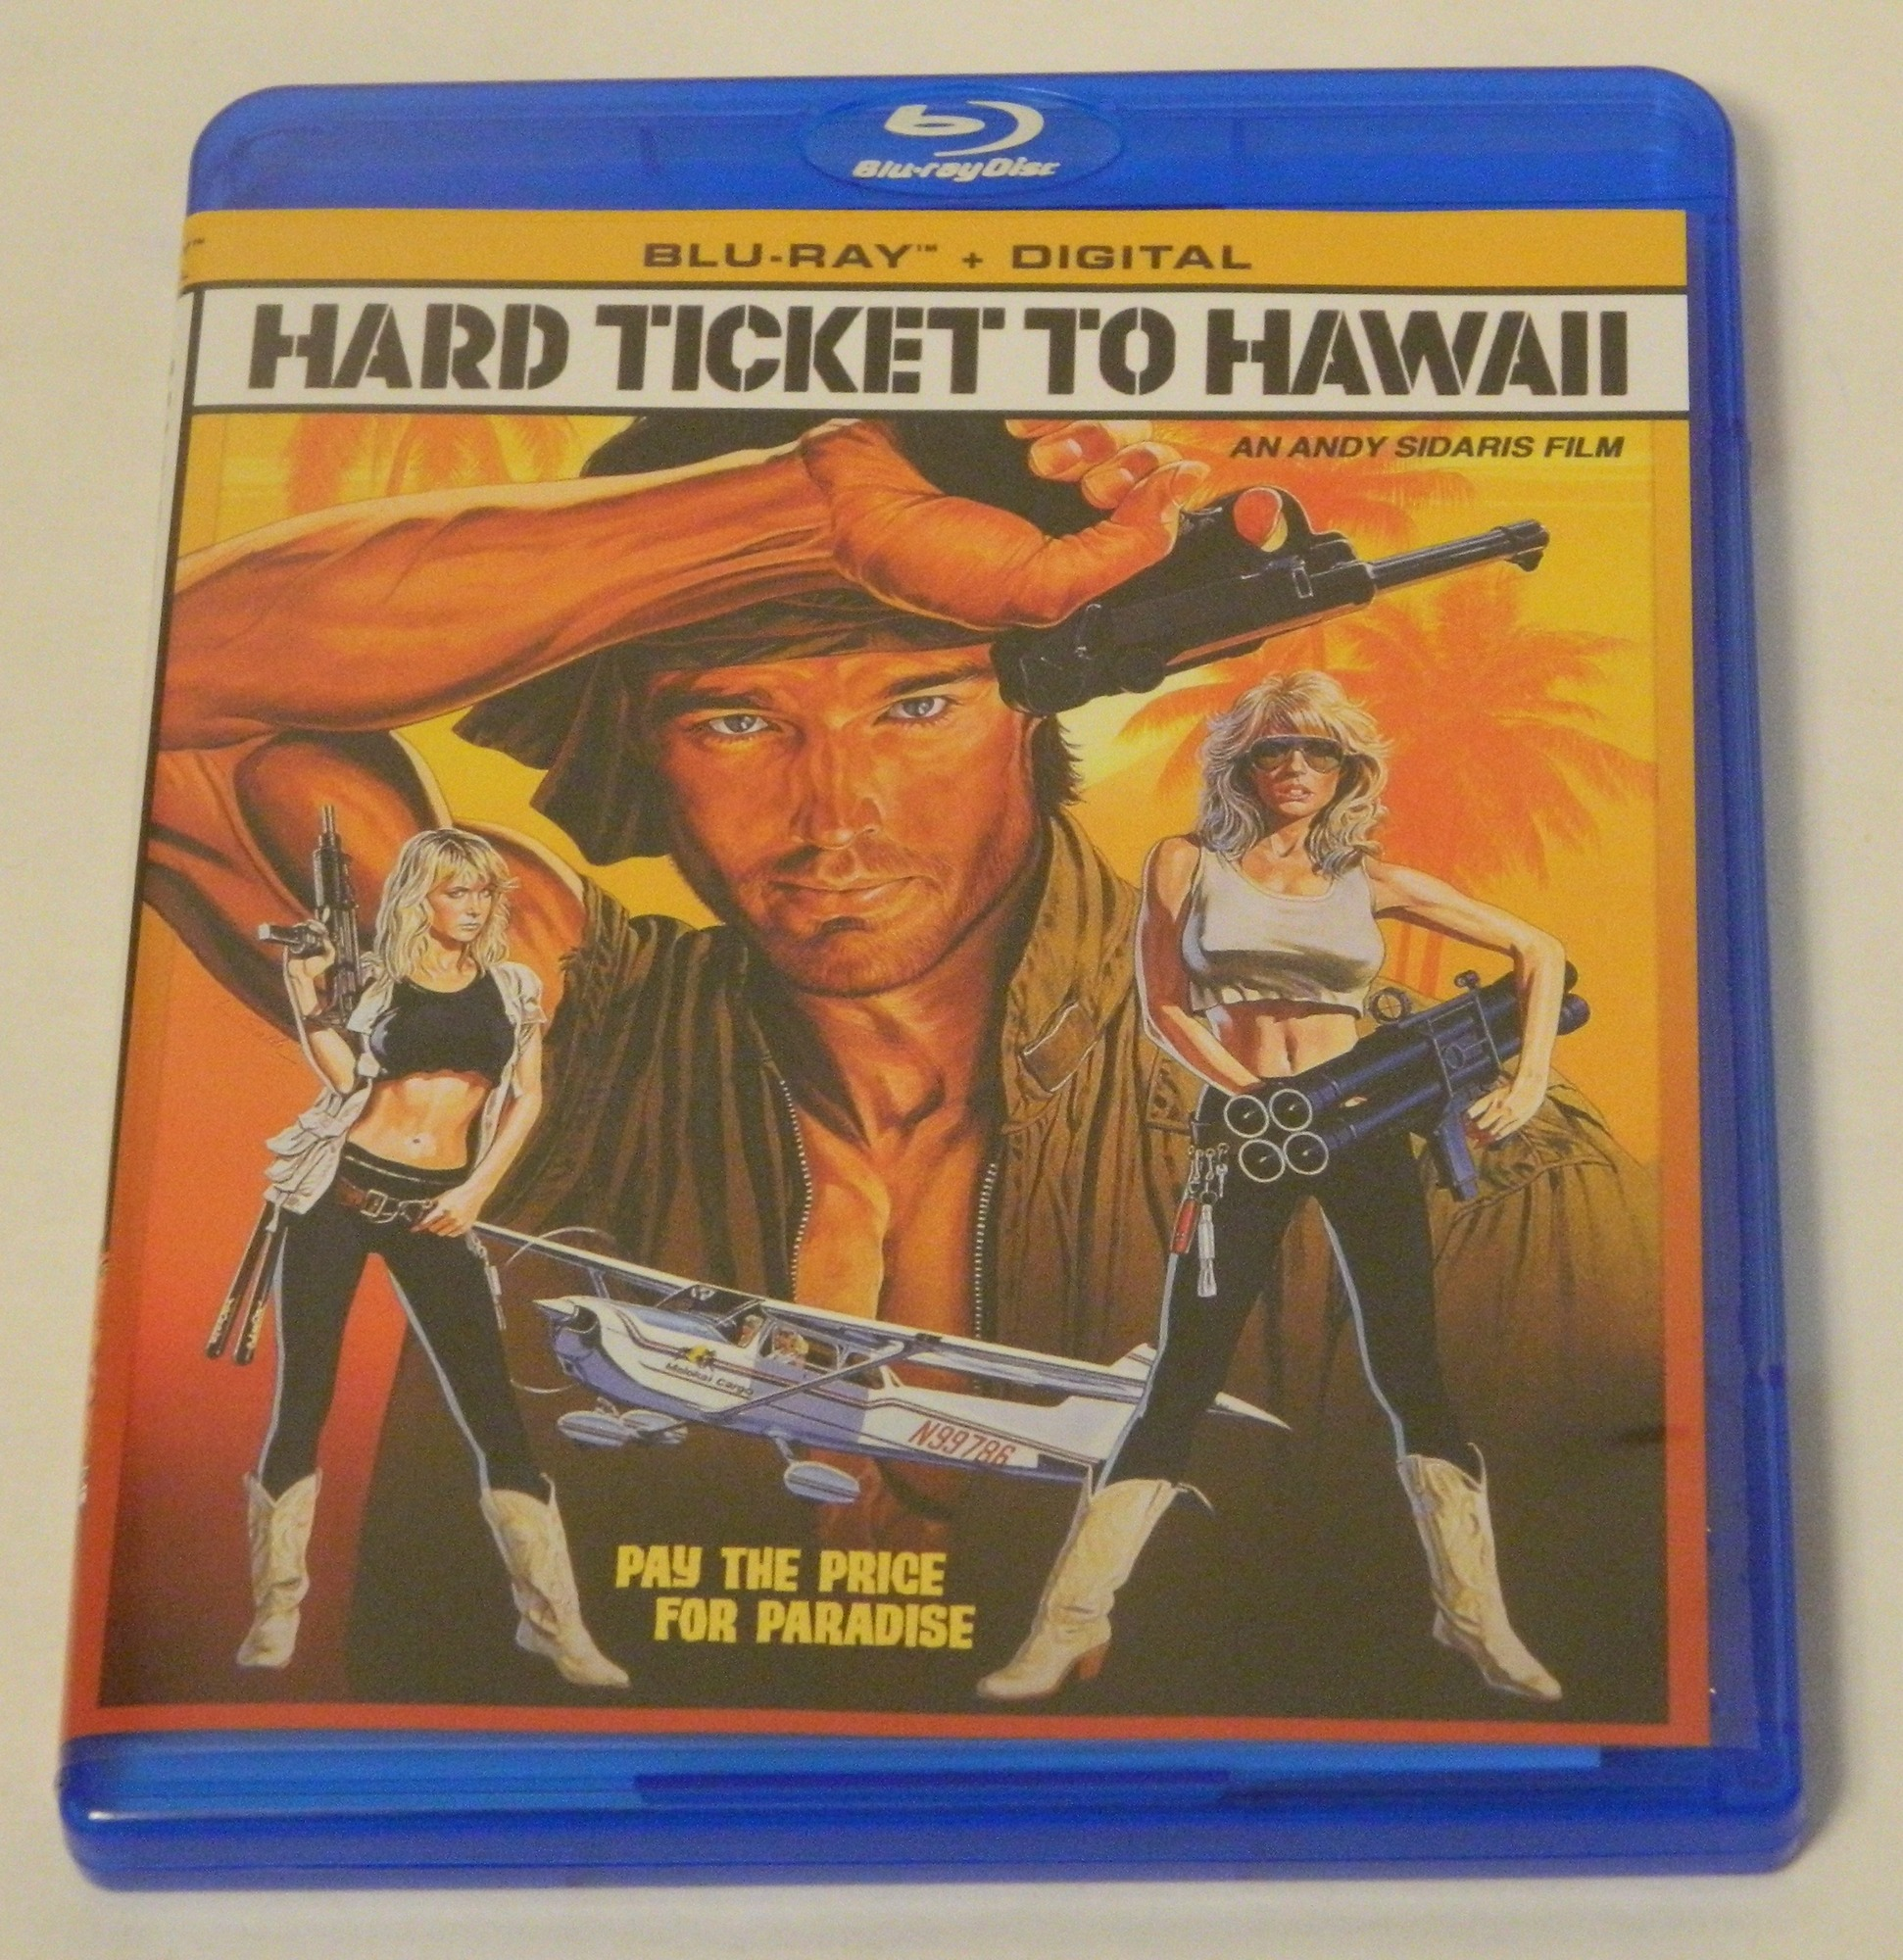 Hard Ticket to Hawaii Blu-ray